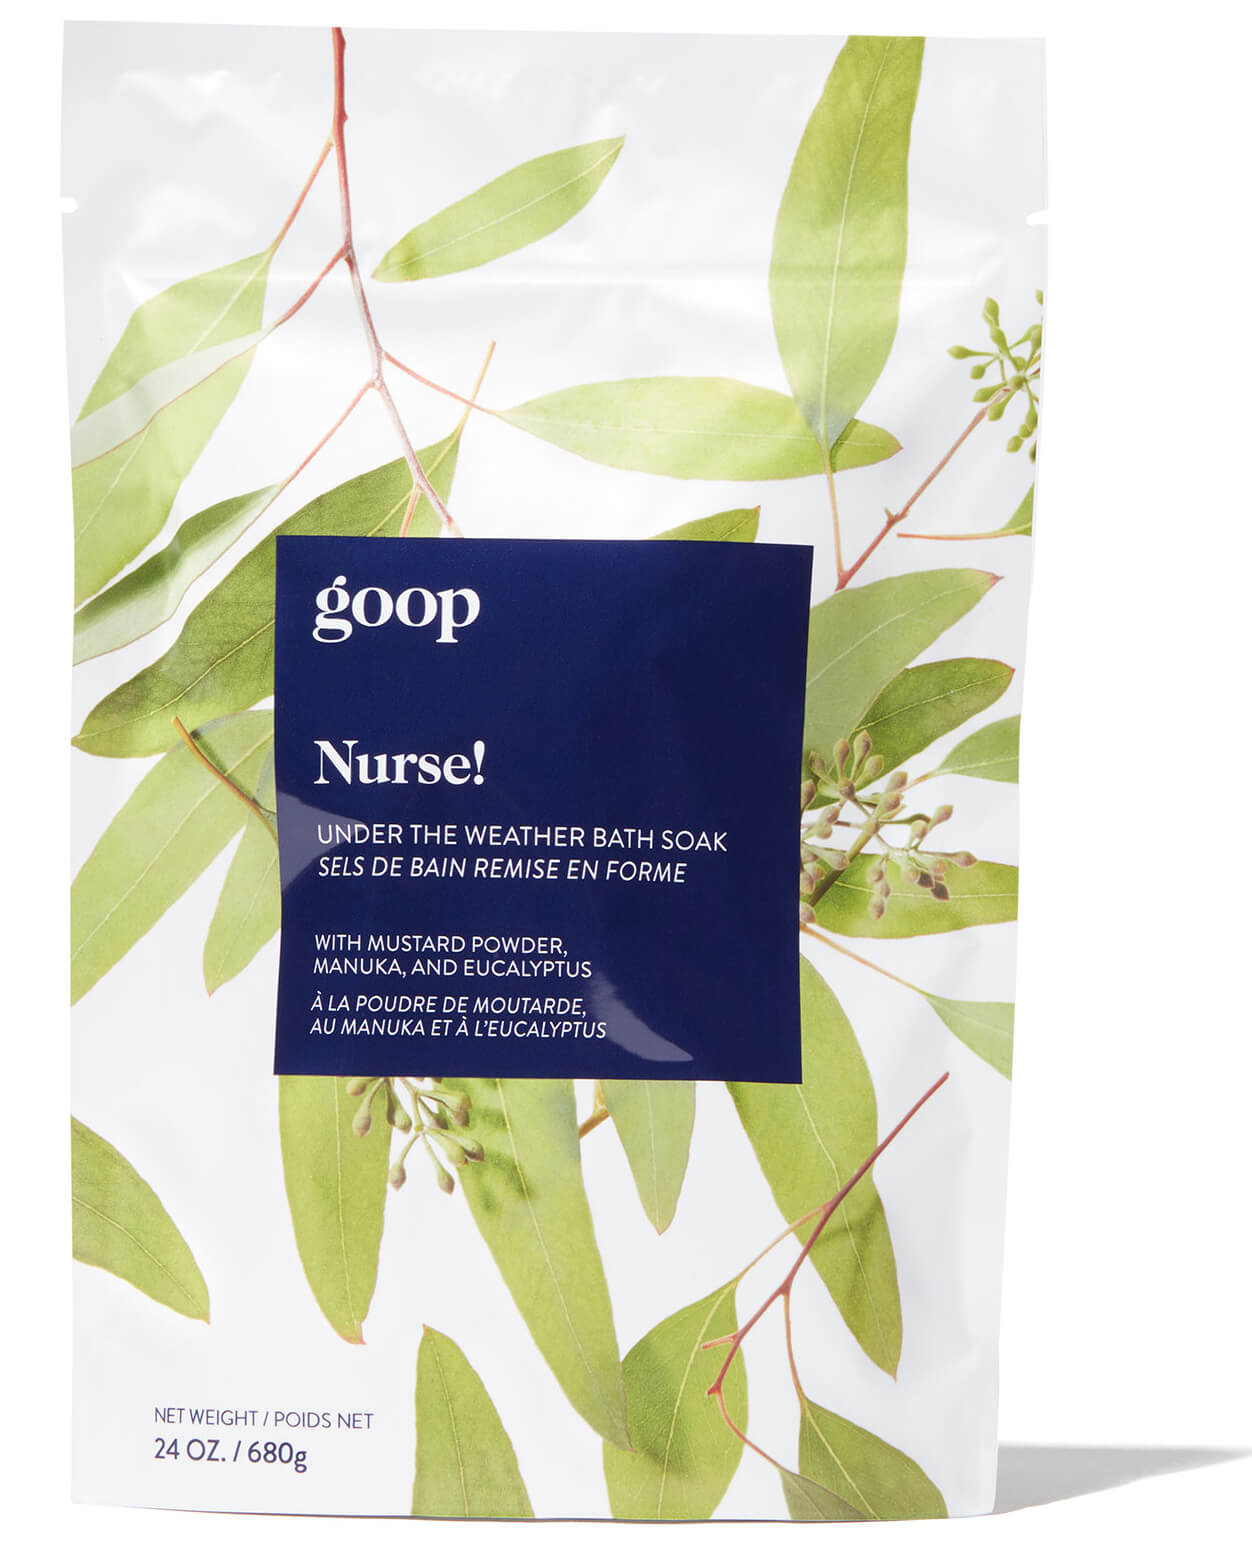 Goop Nurse! Bath Soak